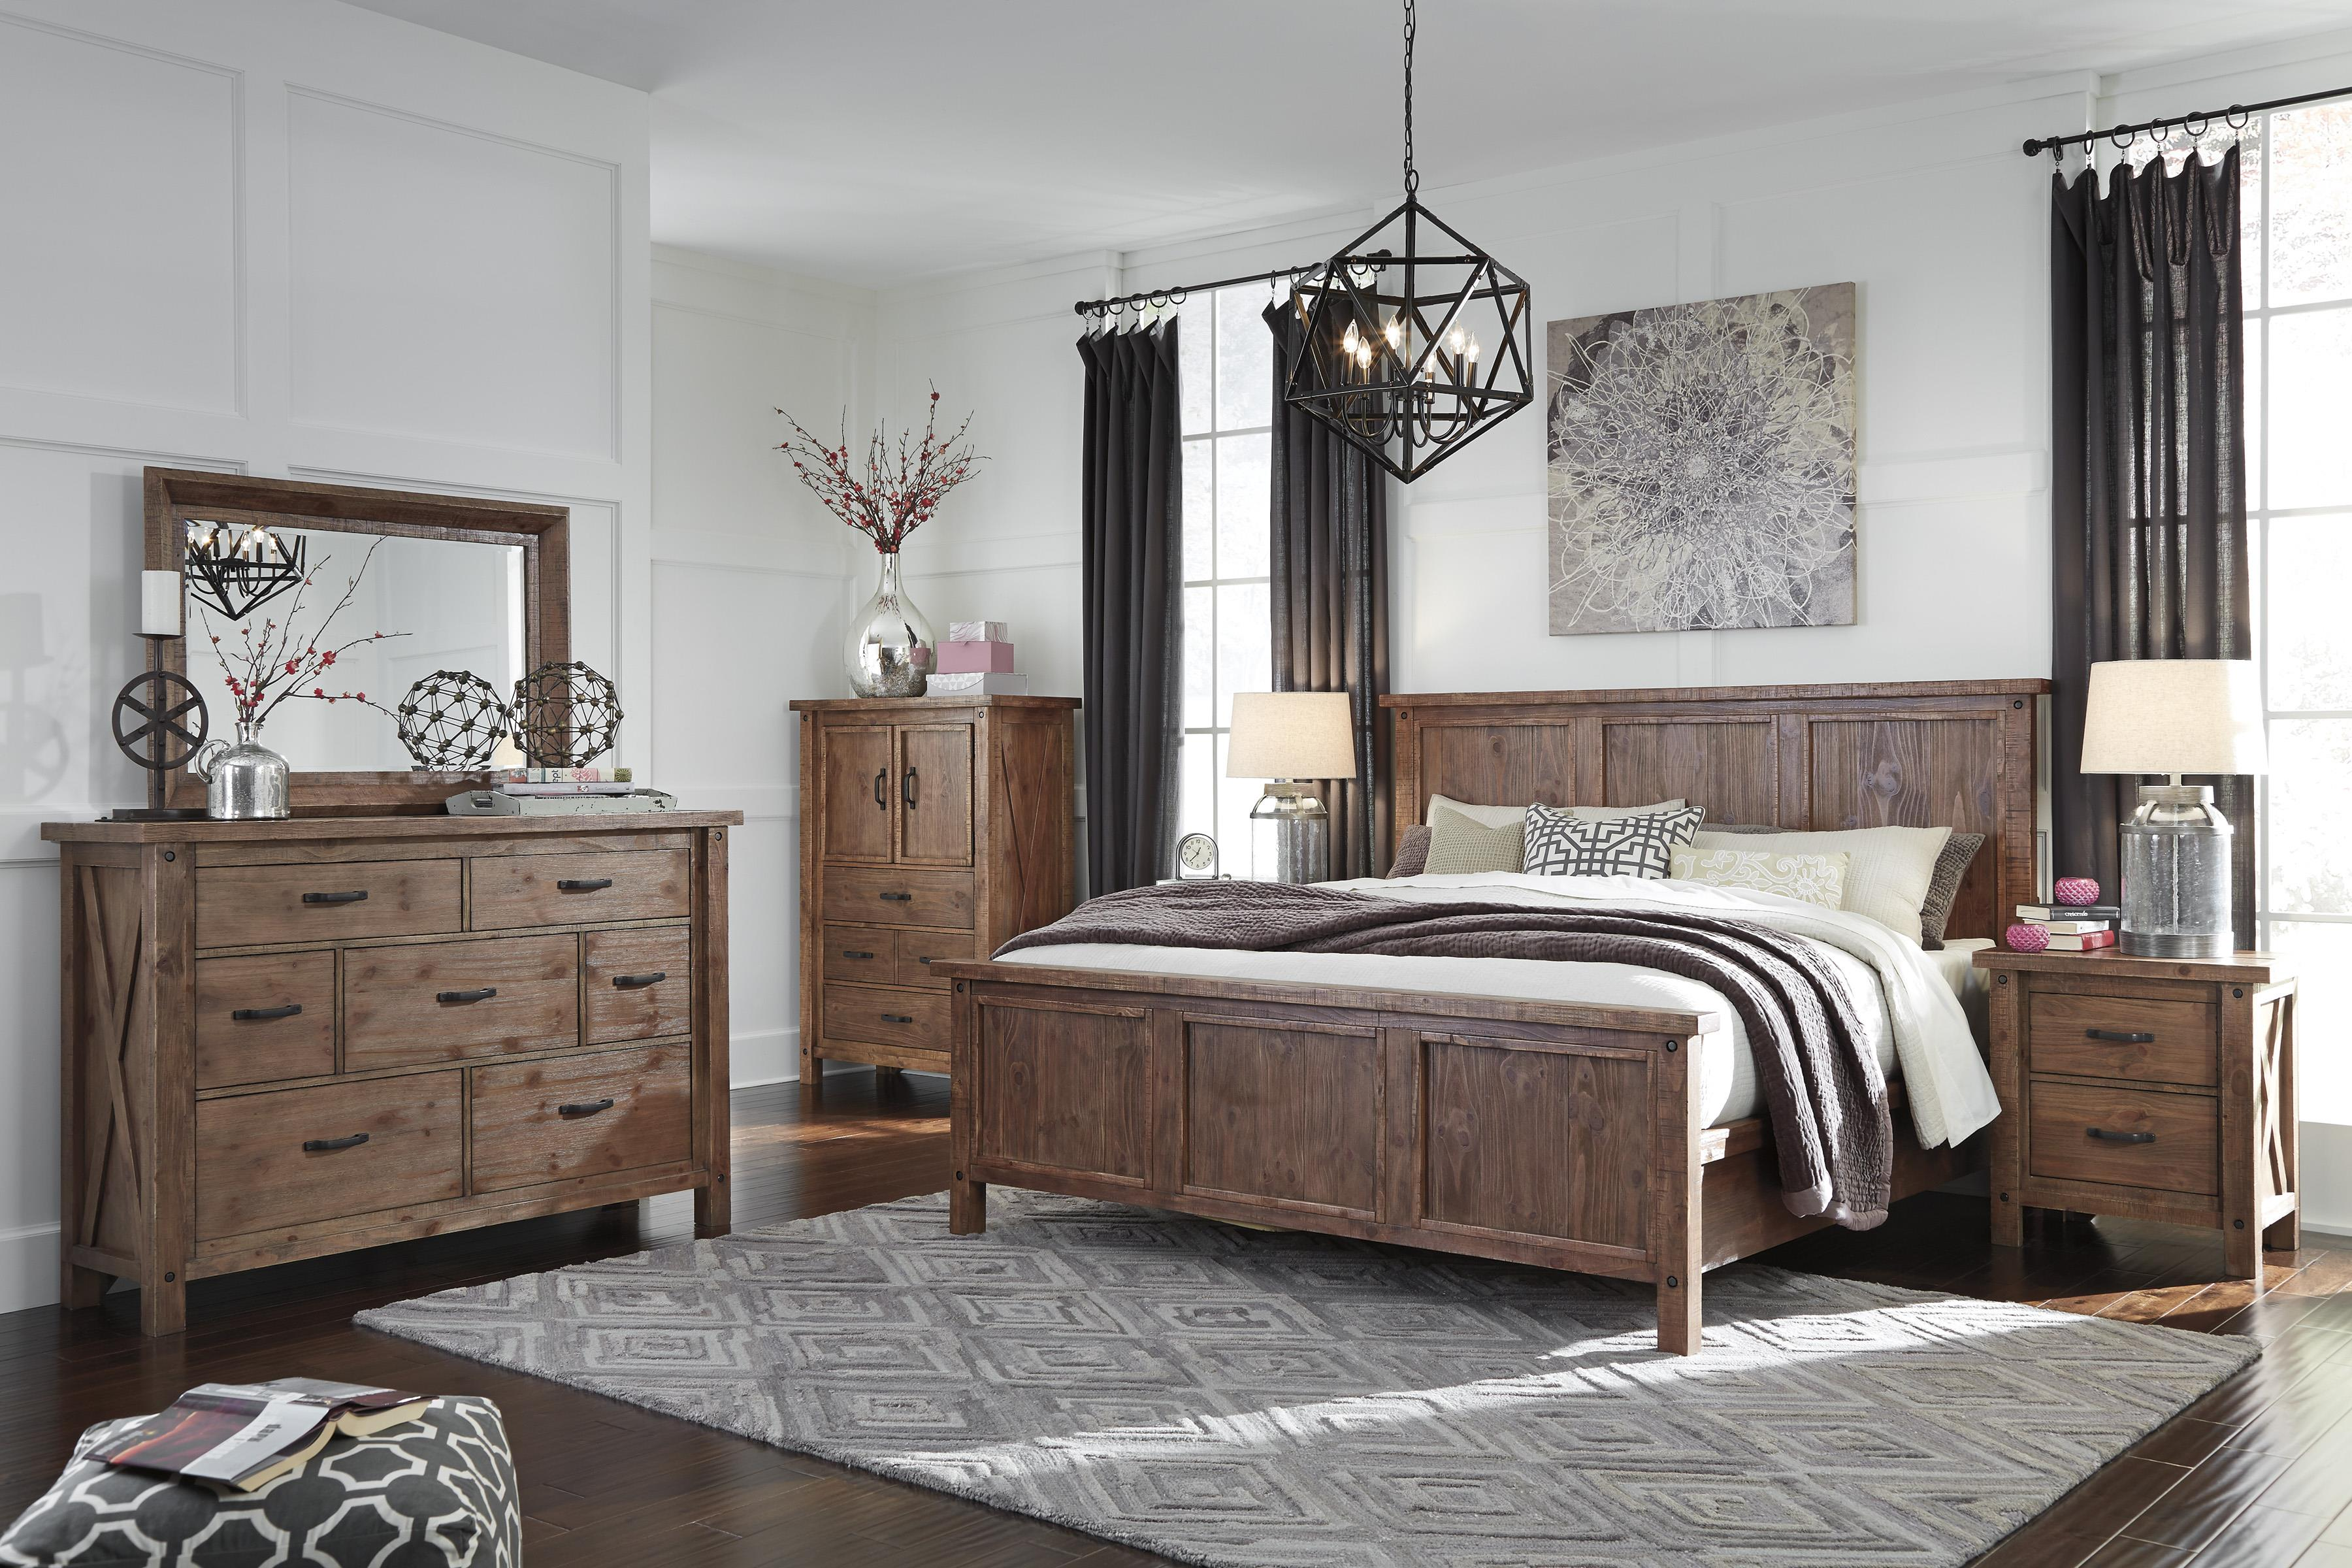 Signature Design by Ashley Tamilo King Bedroom Group - Item Number: B714 K Bedroom Group 1